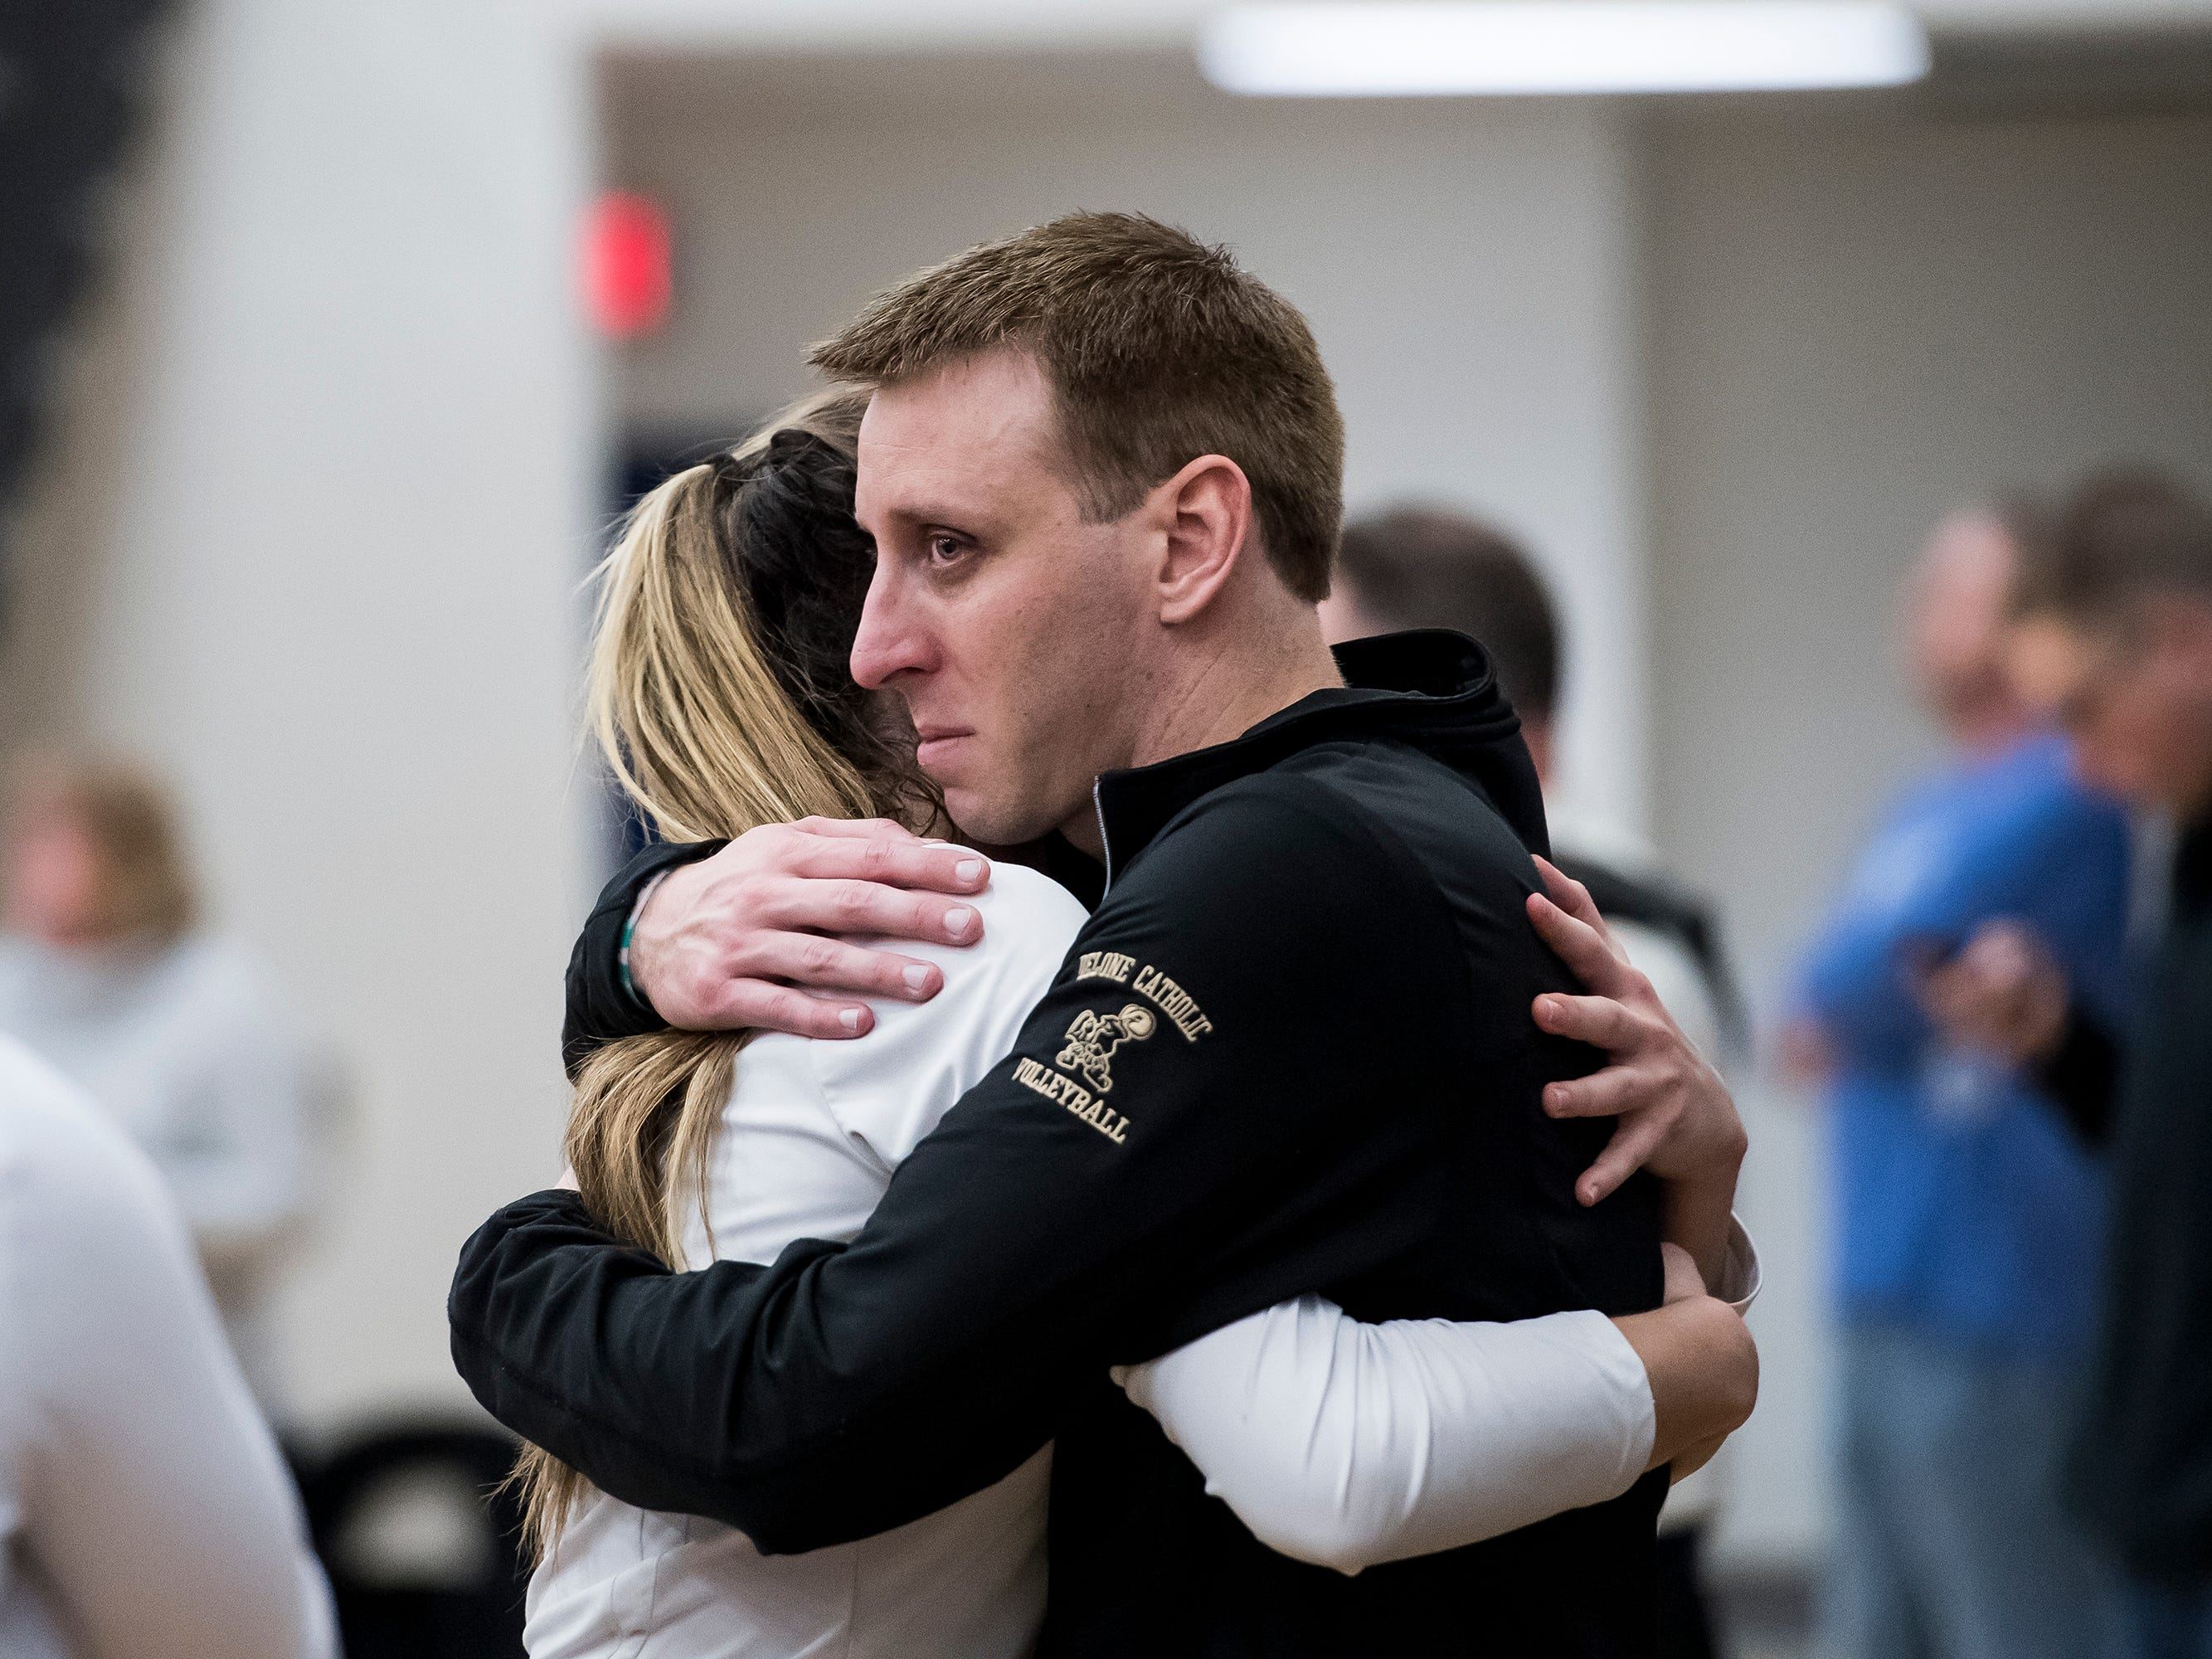 Delone Catholic head coach Jason Leppo hugs Maddie Clabaugh after the Squires fell in a PIAA 2A semifinal game against Holy Redeemer at Exeter Township High School in Reading on Tuesday, November 13, 2018. The Squires fell in five sets; 23-25, 25-13, 25-13, 18-25, 15-10.